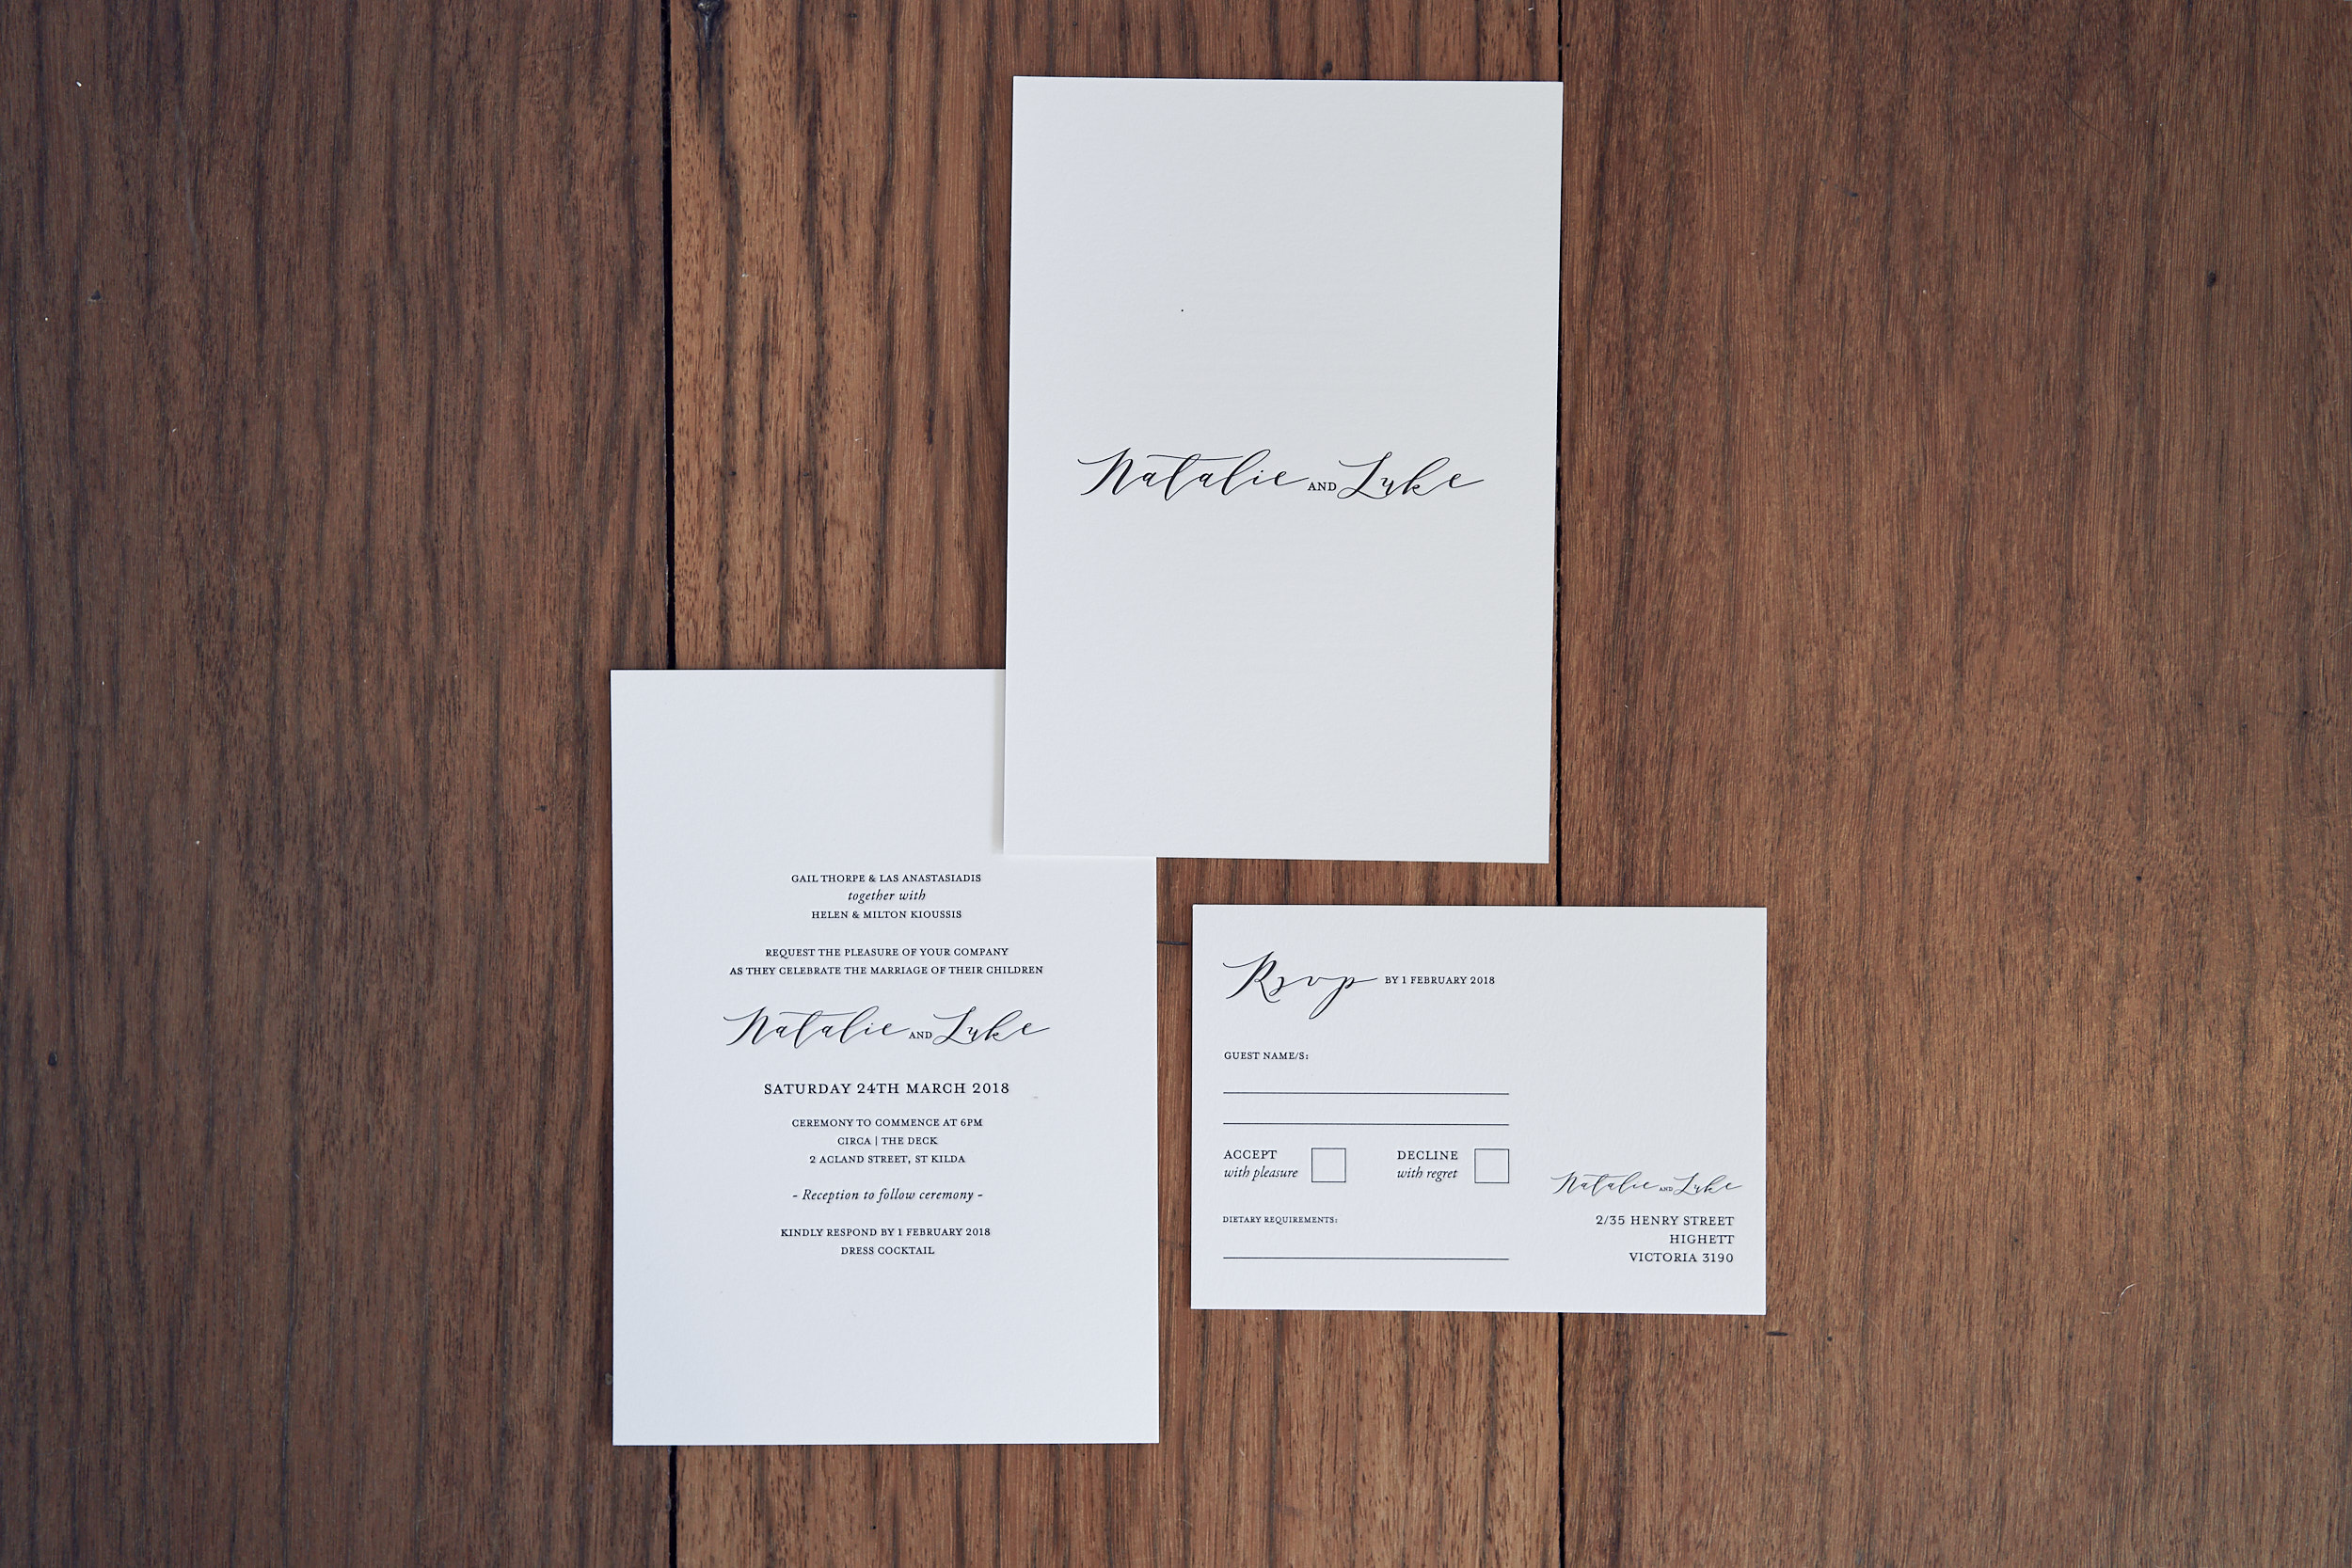 Modern wedding invitations by Wedding Paper Chic - Lost In Love Photography